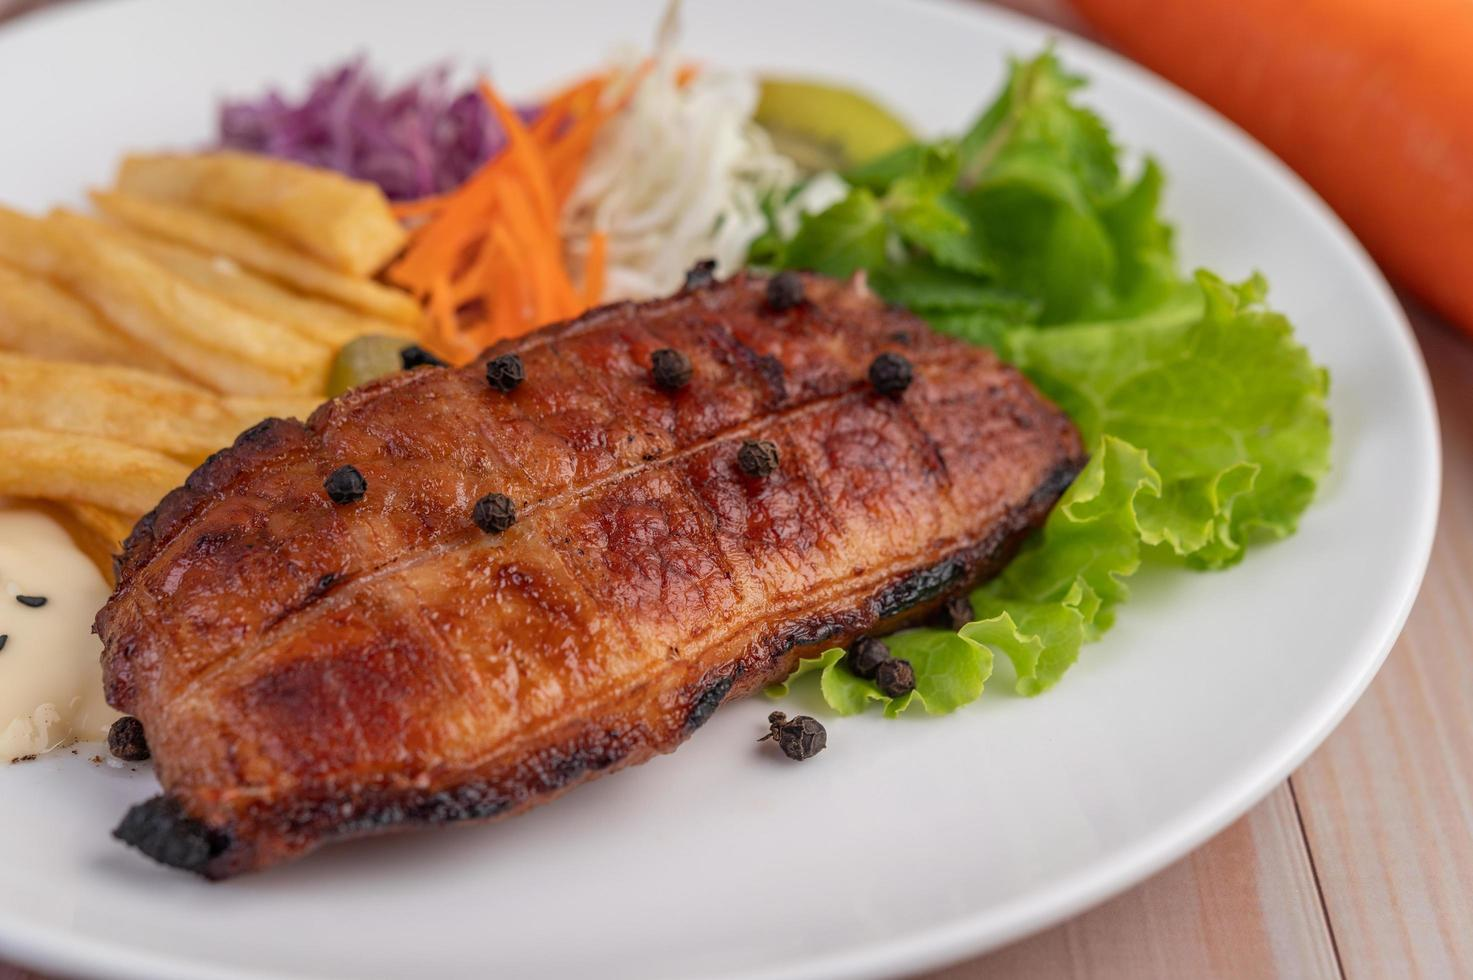 Fish with french fries and salad photo